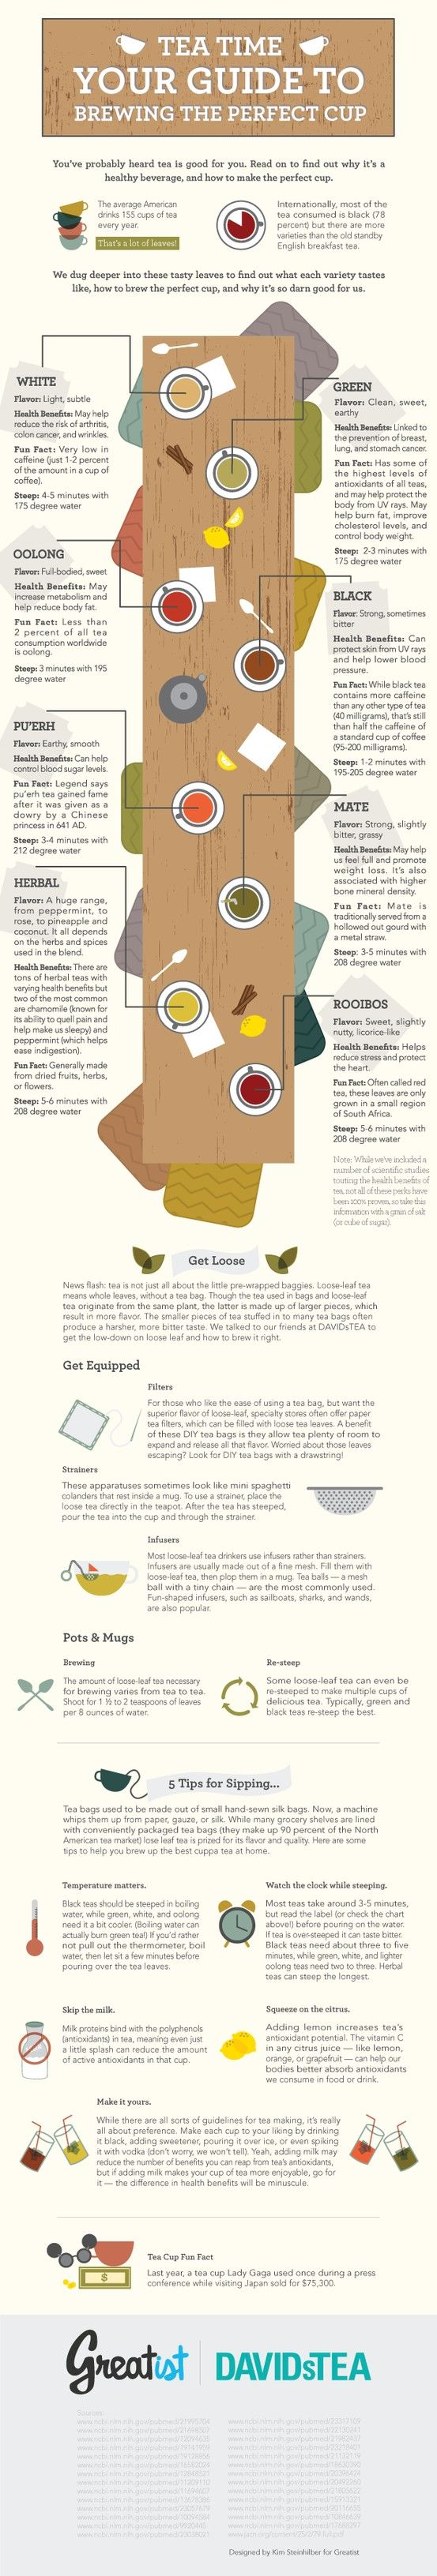 Tea Time: Your Guide to Brewing the Perfect Cup